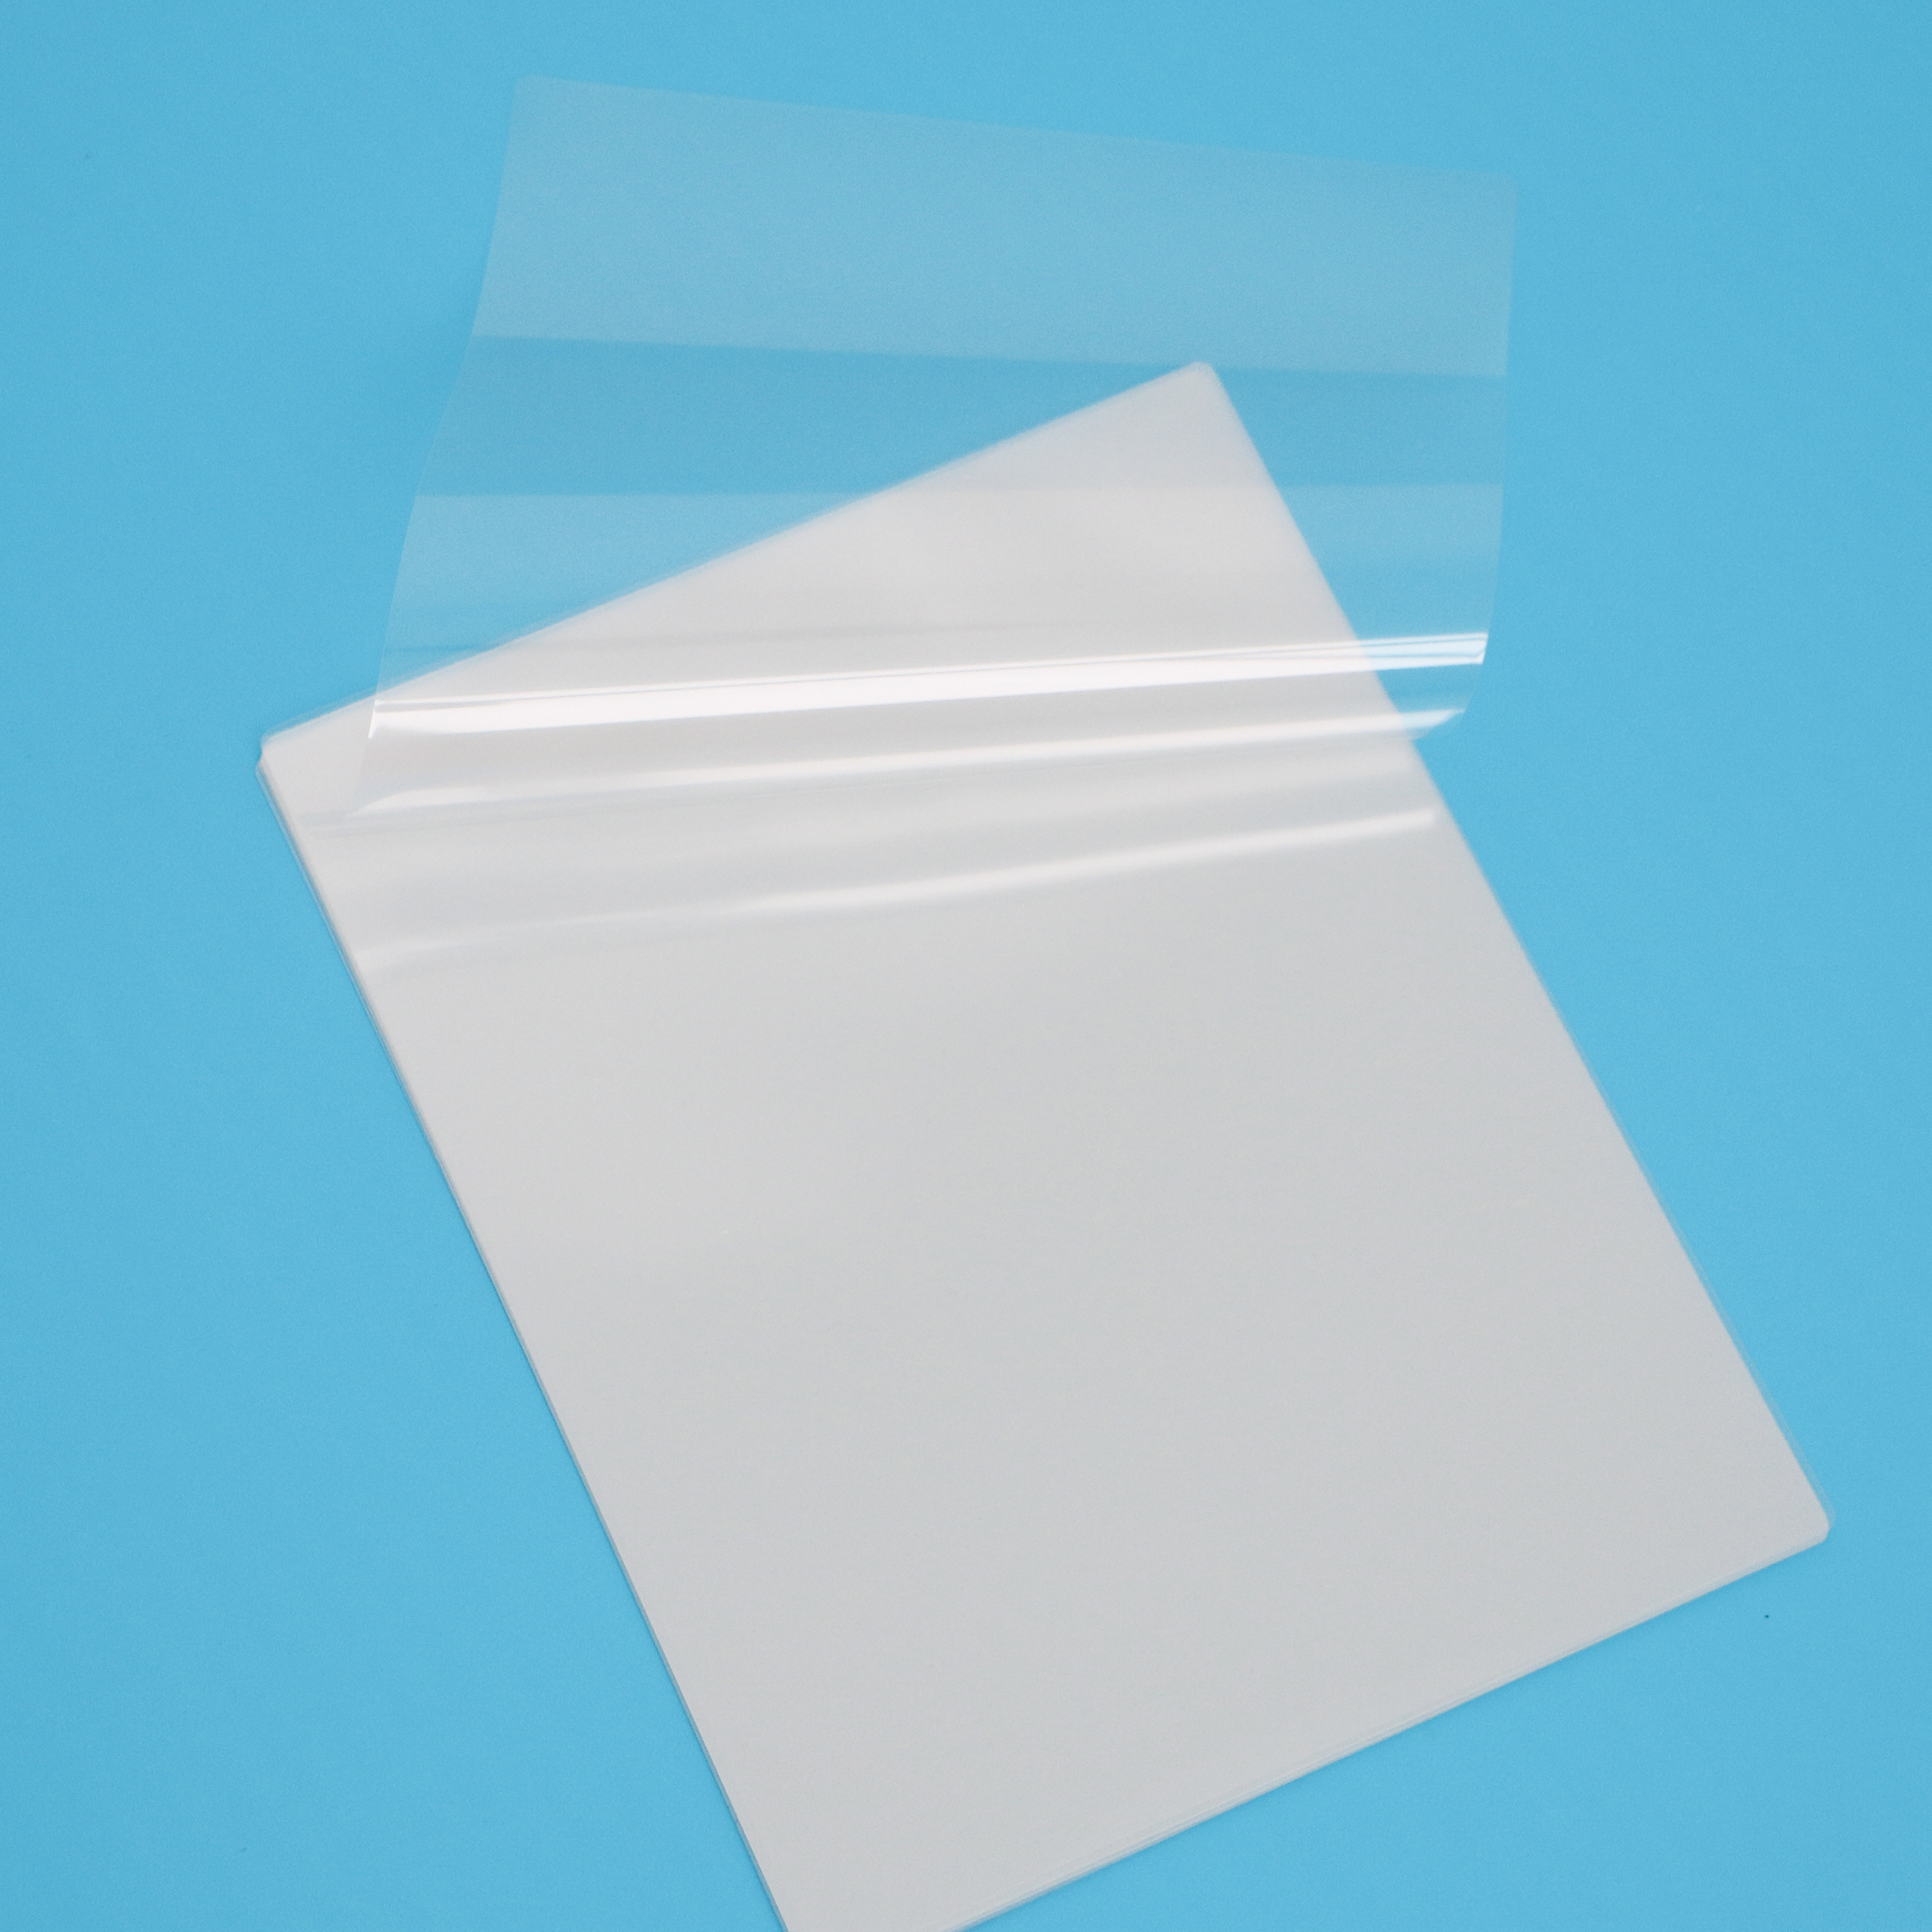 【New Product】Separable Laminating Film